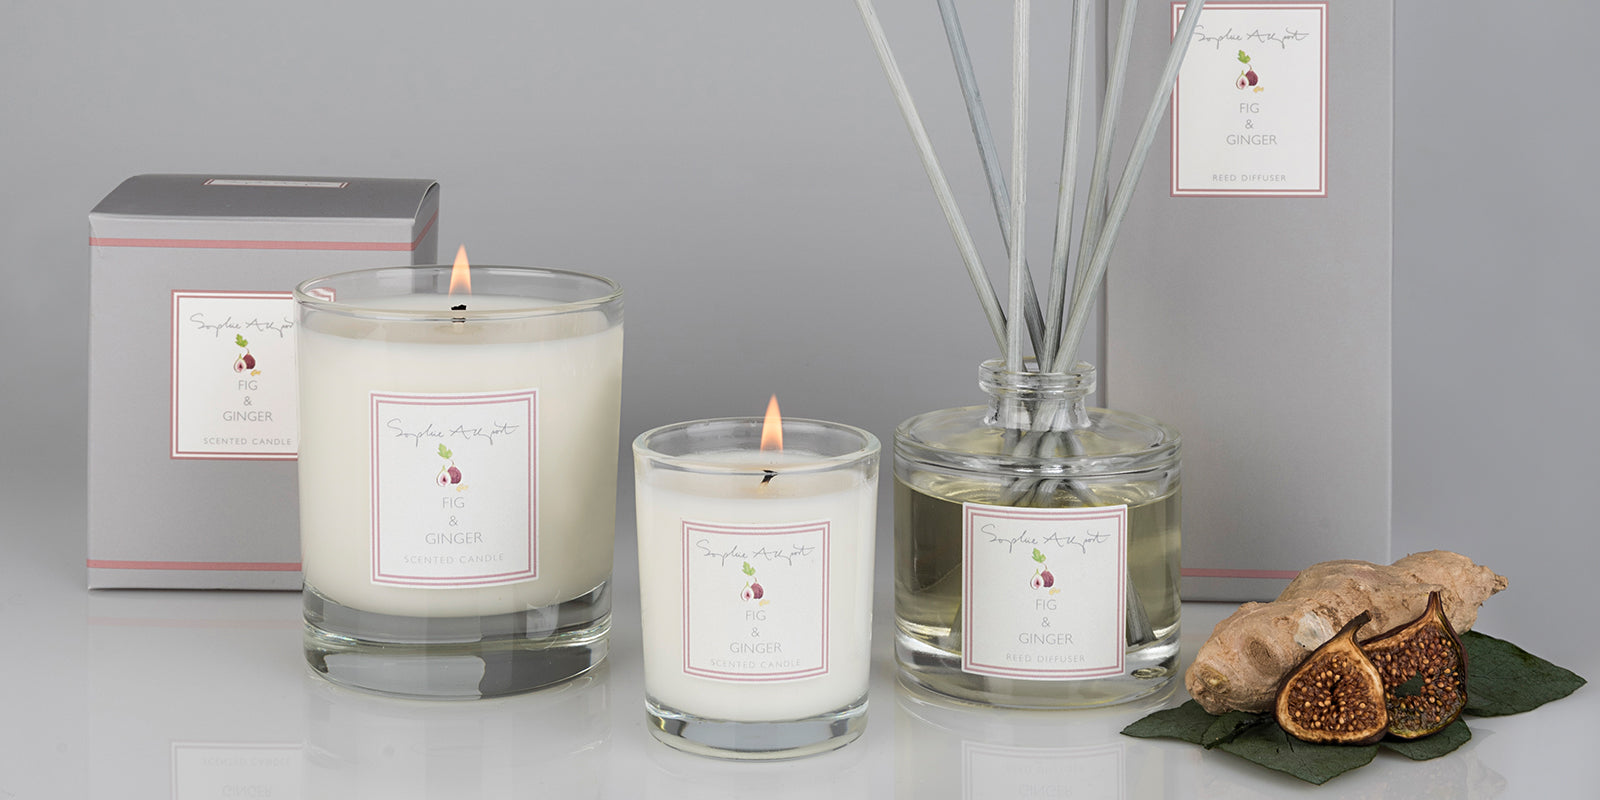 Fig & Ginger Home Scent by Sophie Allport